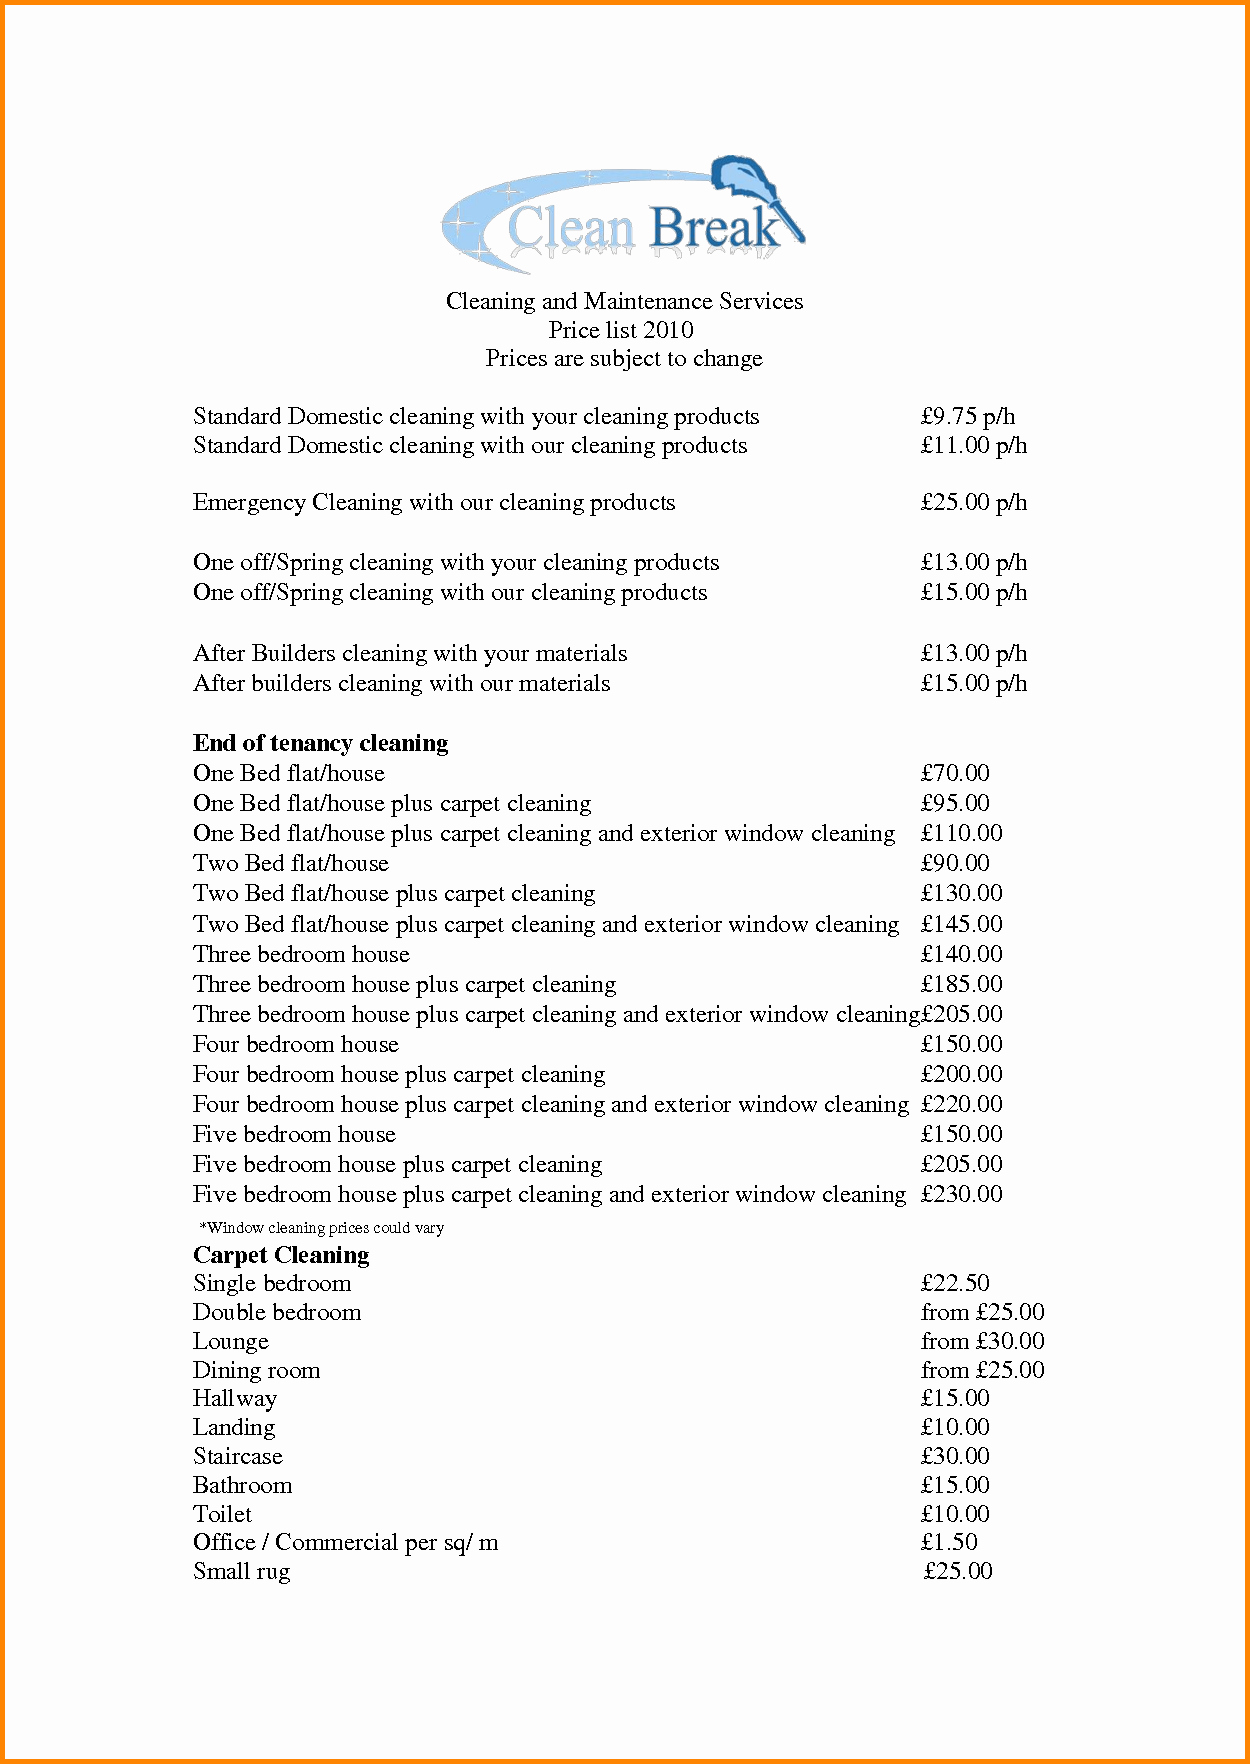 Cleaning Services Price List Template Unique House Cleaning Services Prices List